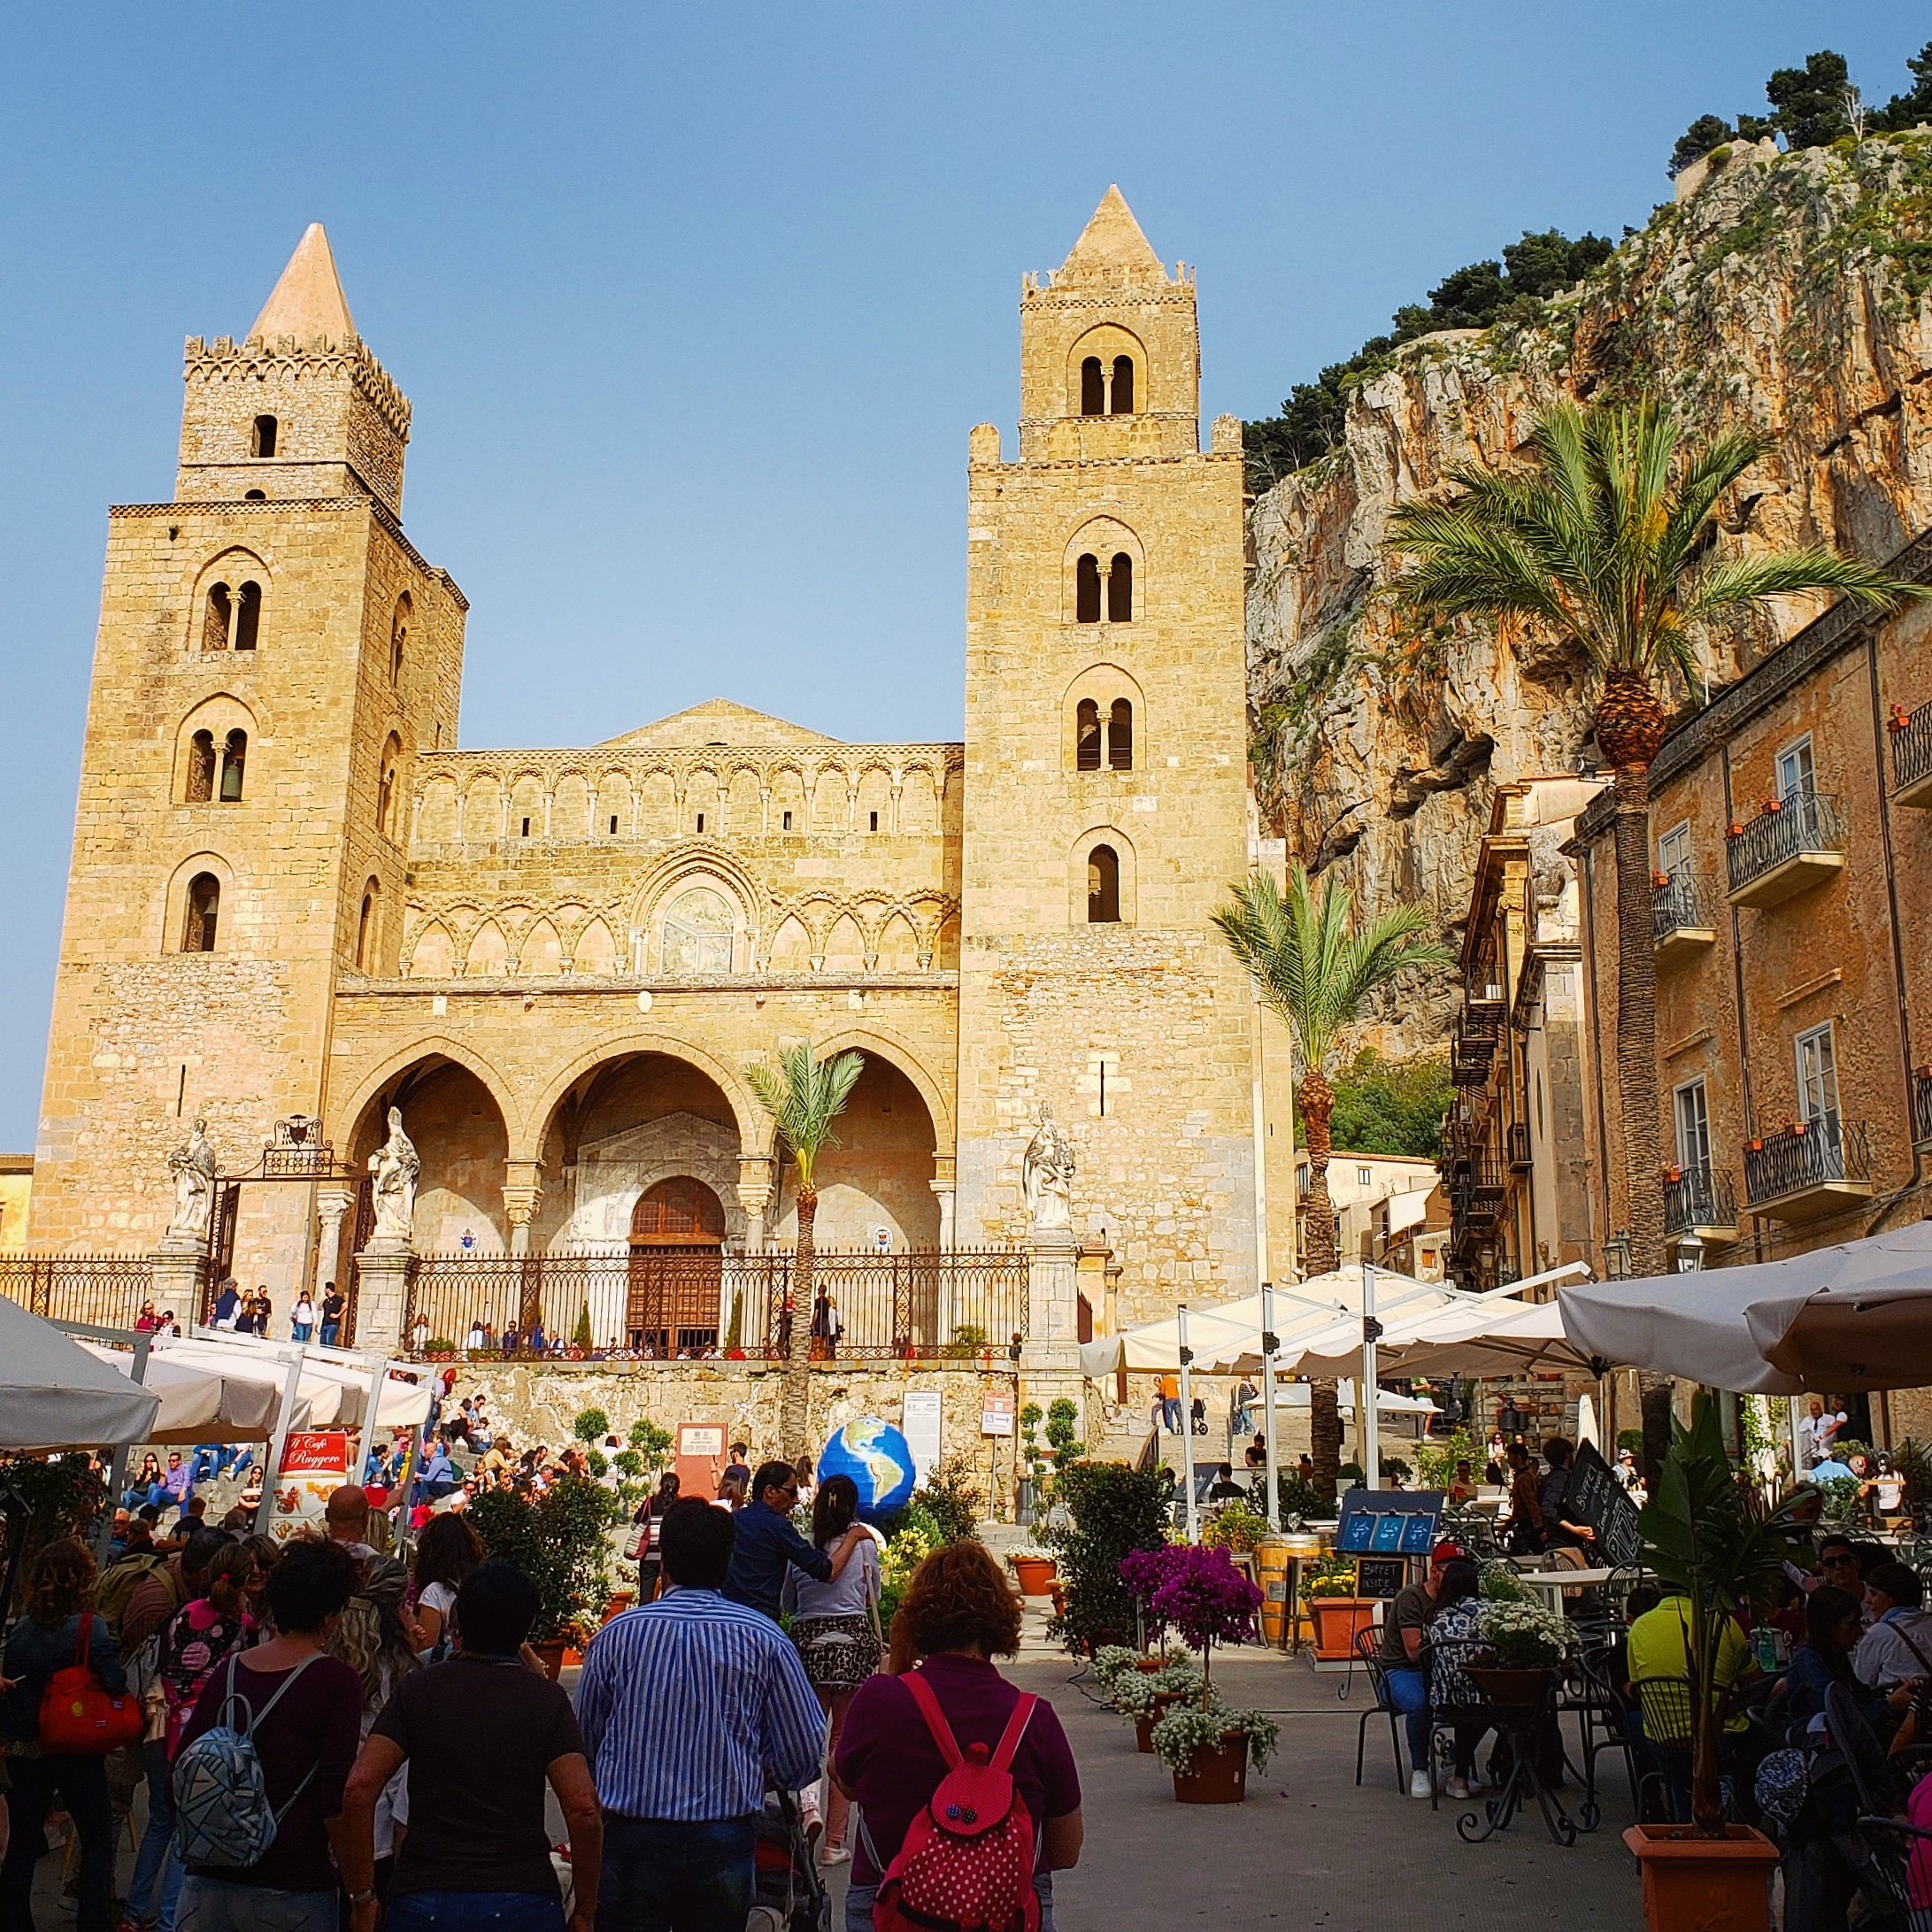 52 Reasons To Love Sicily   #2. Take The Train